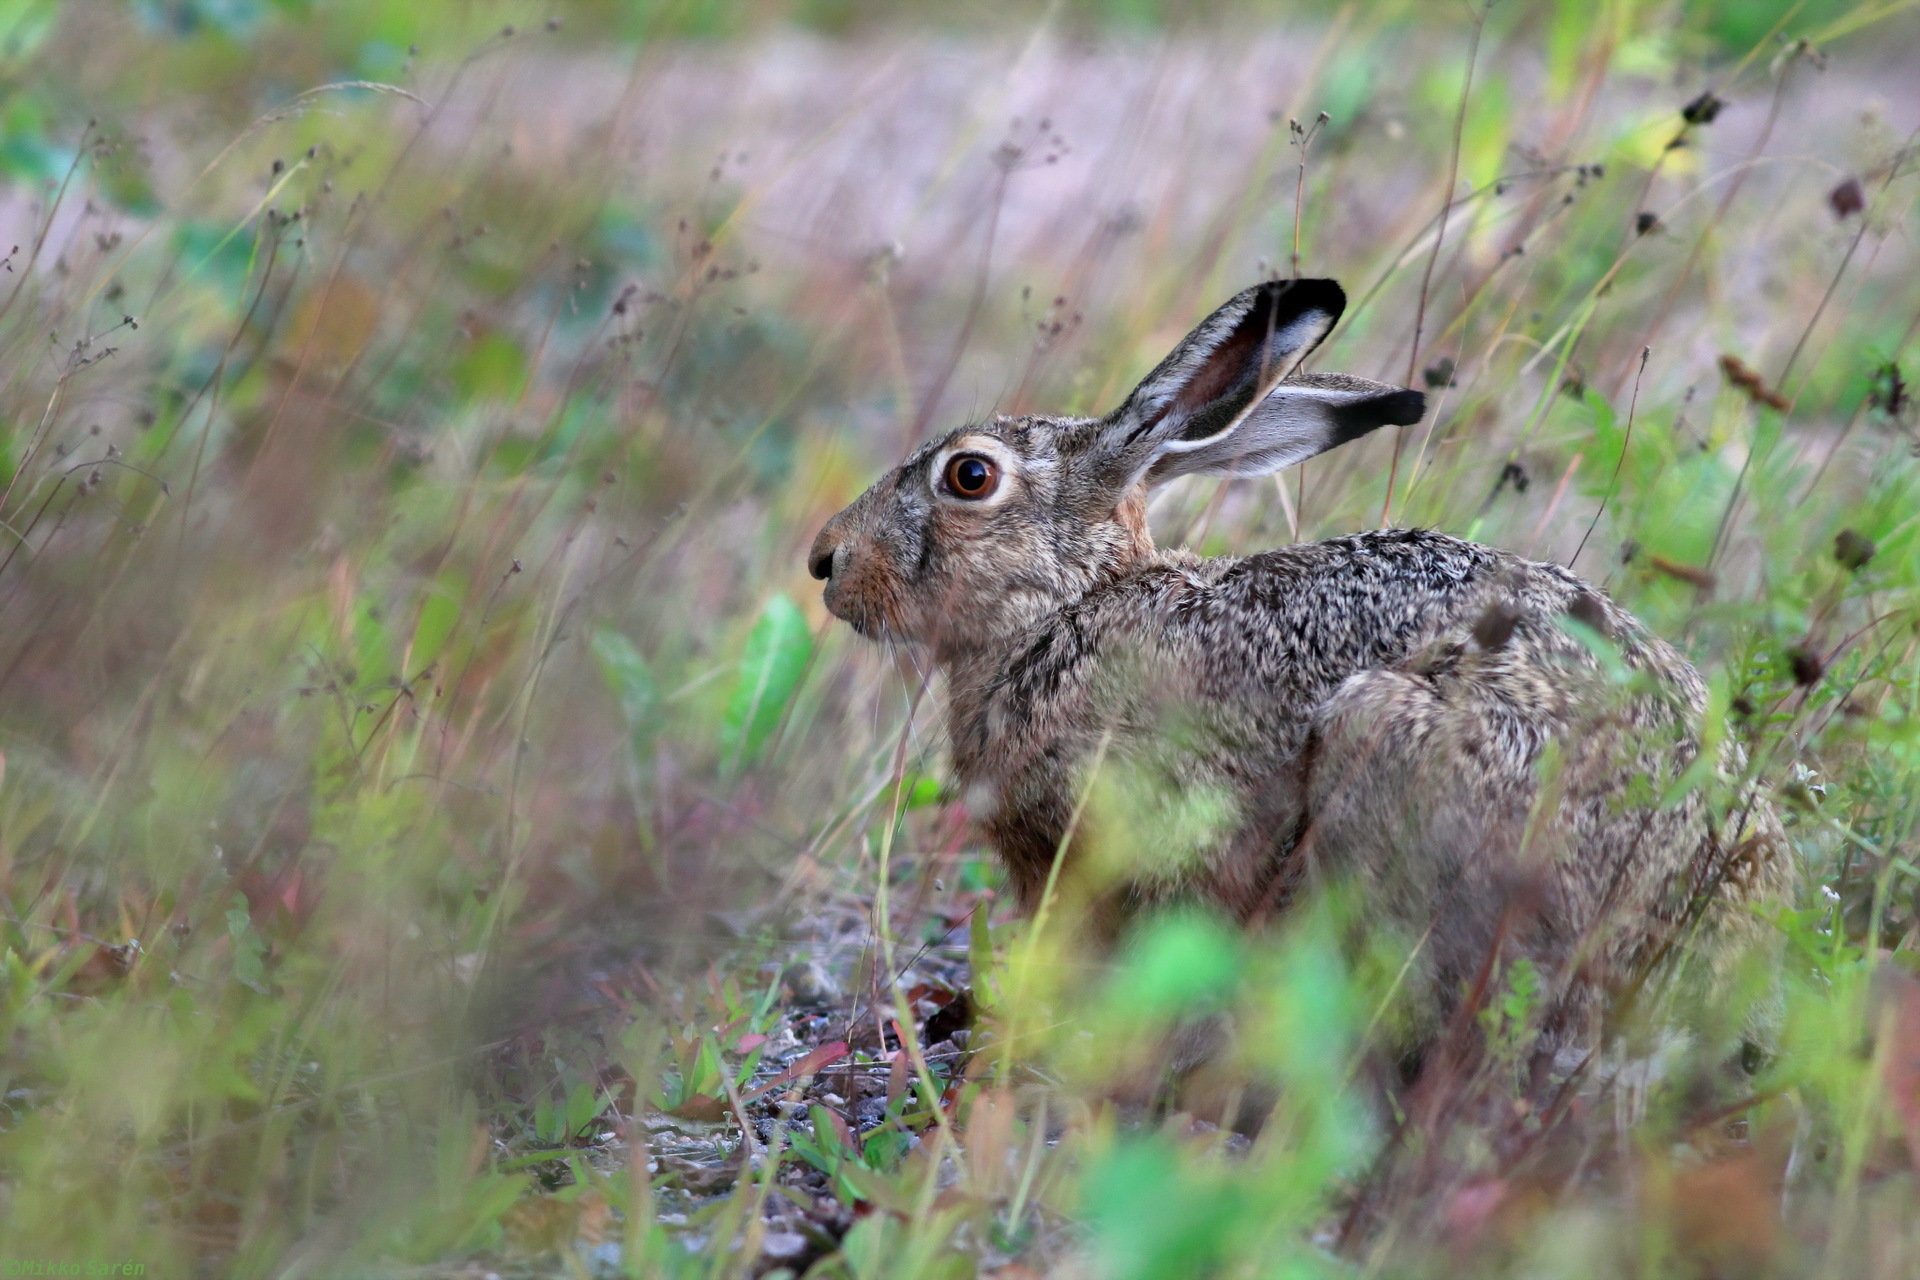 Download hd 1920x1280 Hare PC background ID:81089 for free